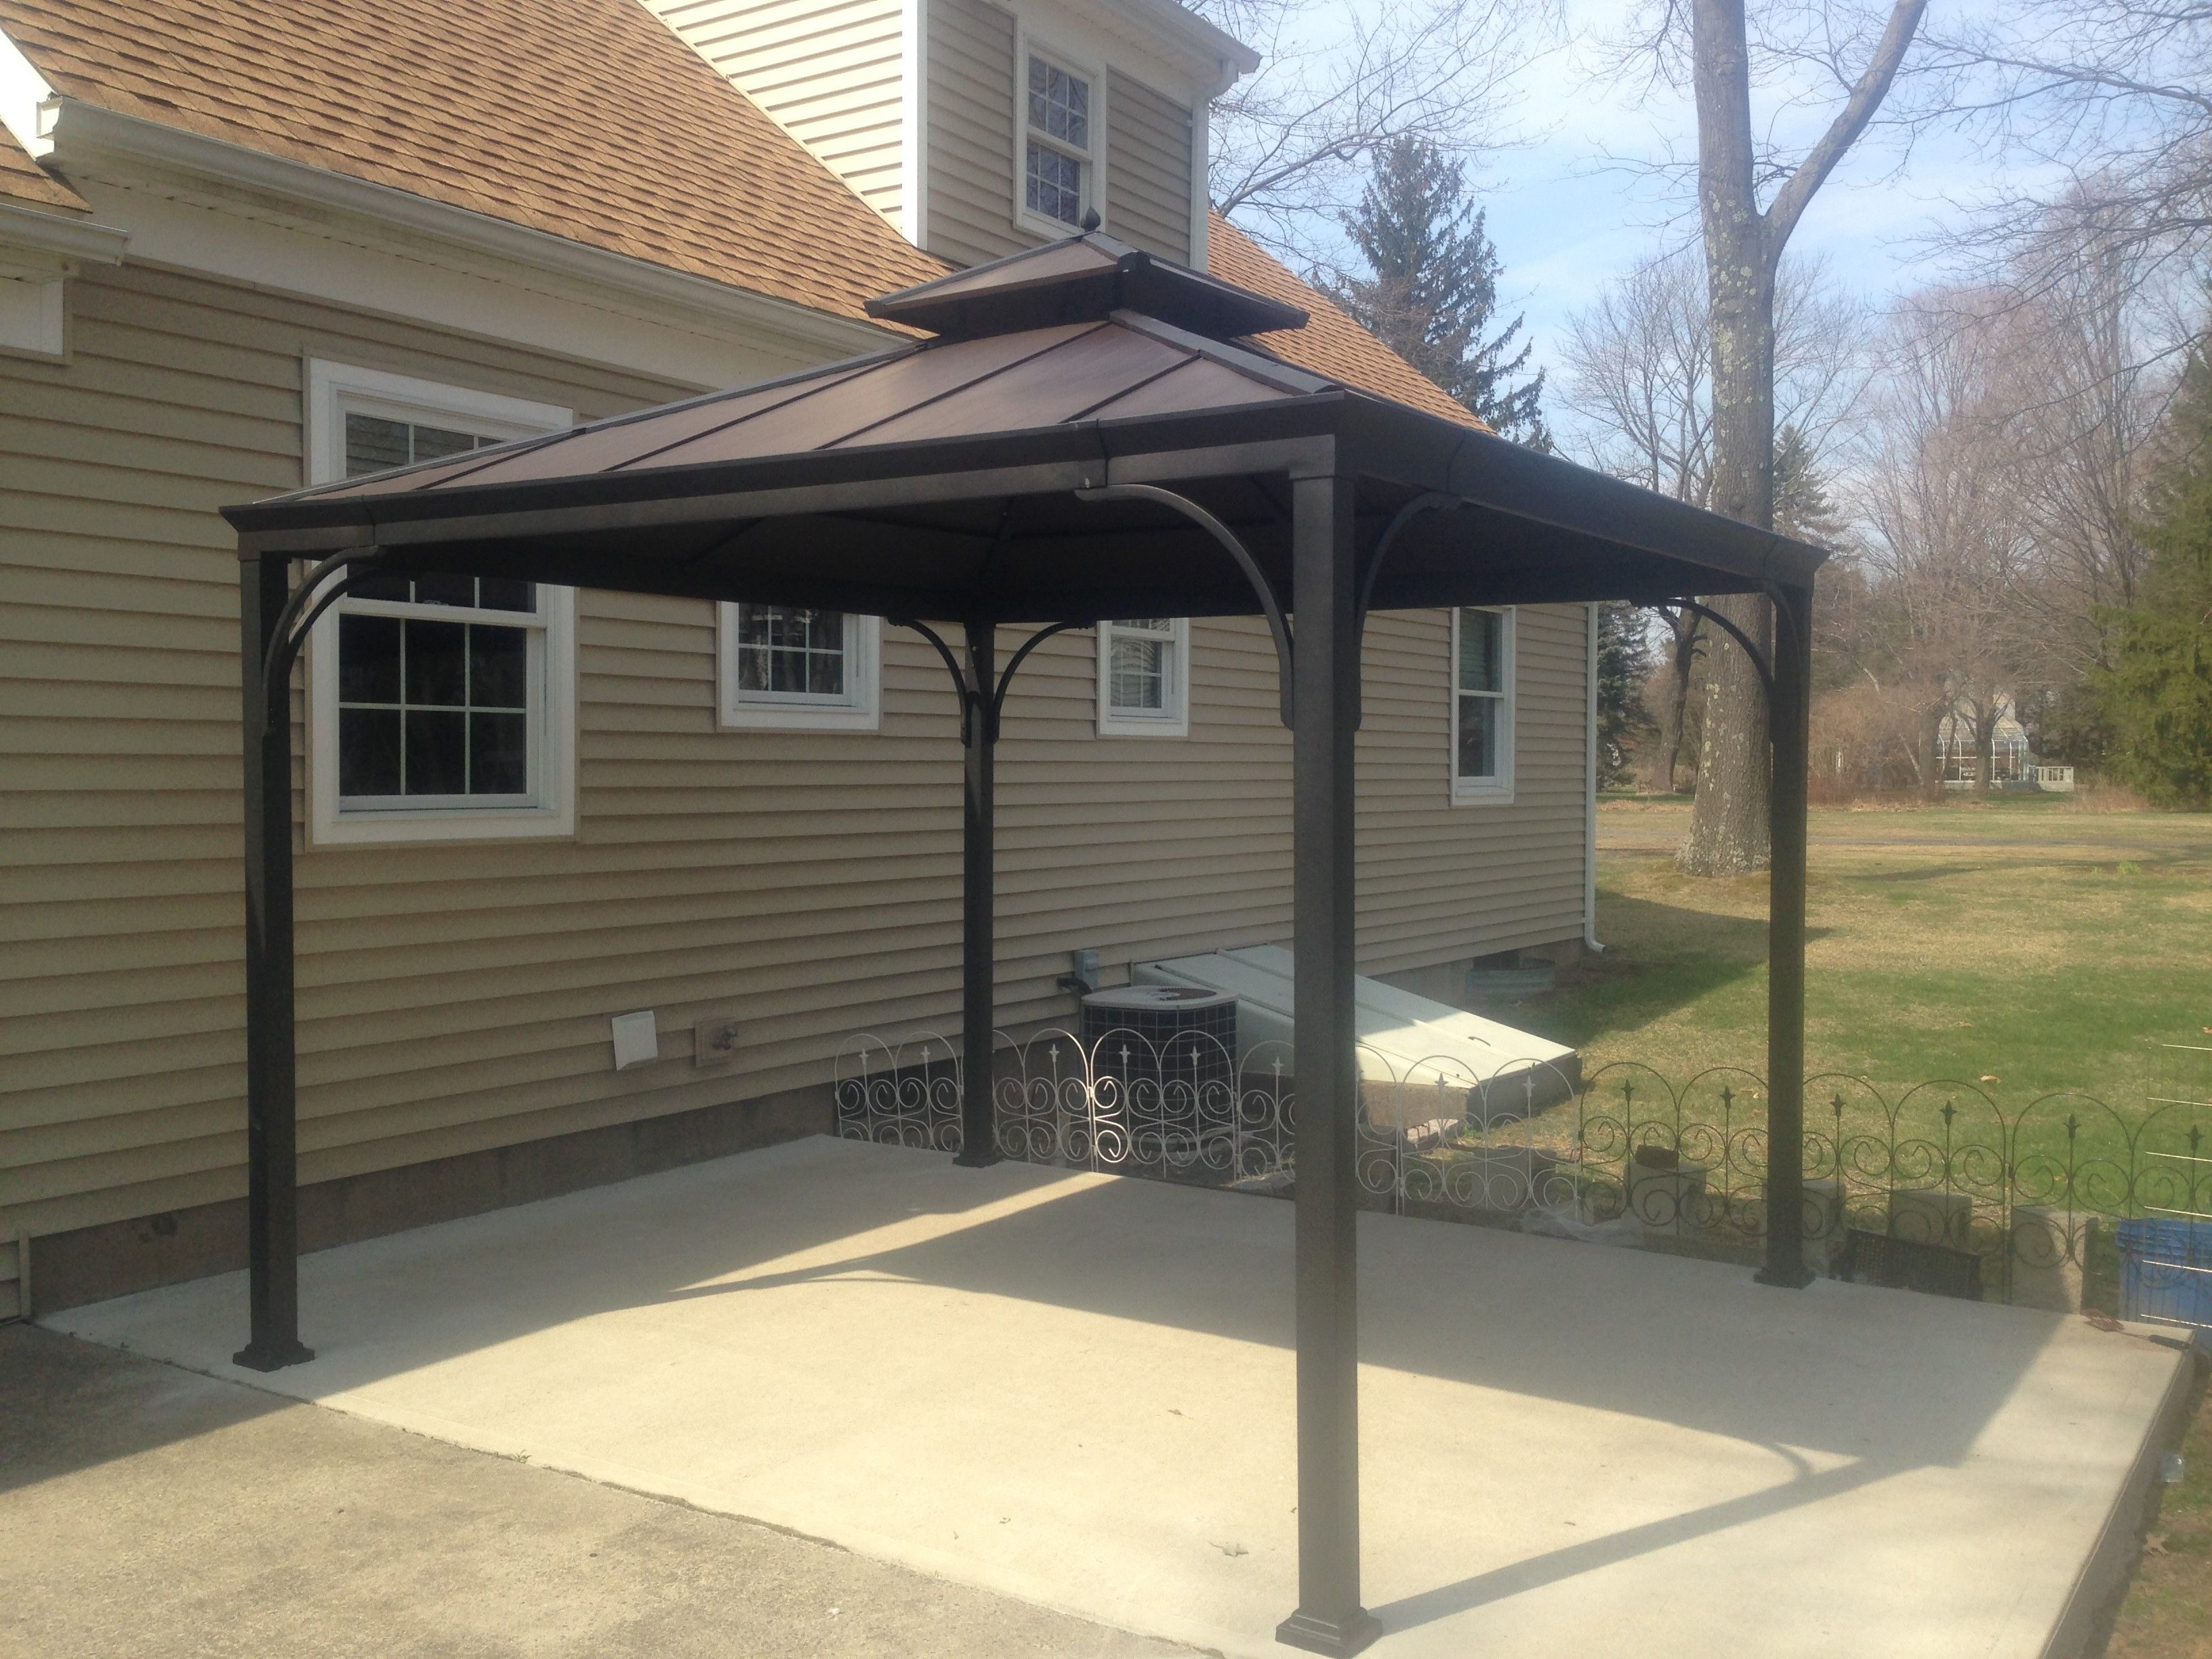 Harper 10 X 10 Metal Gazebo Purchased At Homedepot Assembled In Lake Elsinore Ca Gazebo Aluminum Gazebo Portable Gazebo